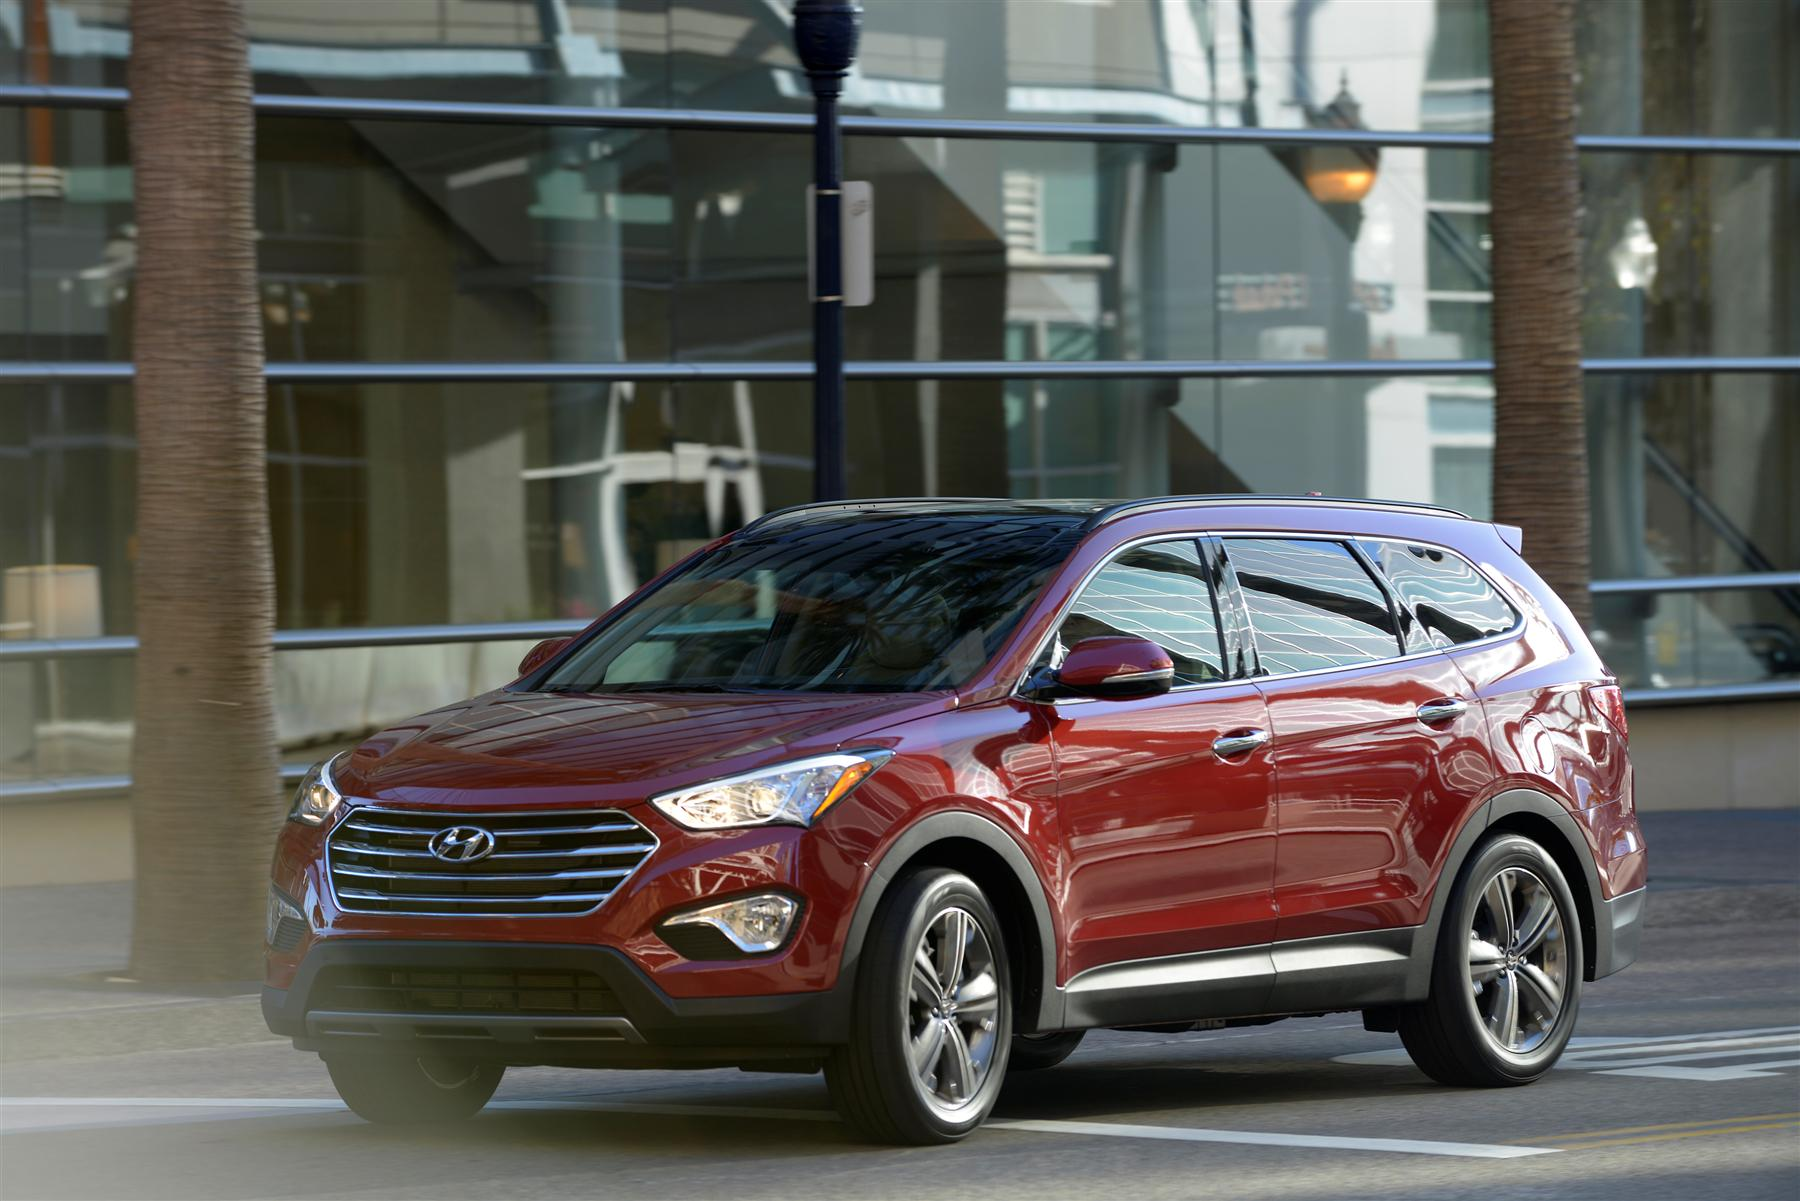 prevnext limited three to model front santa news priced hyundai price sport cost quarters awd fe loaded at